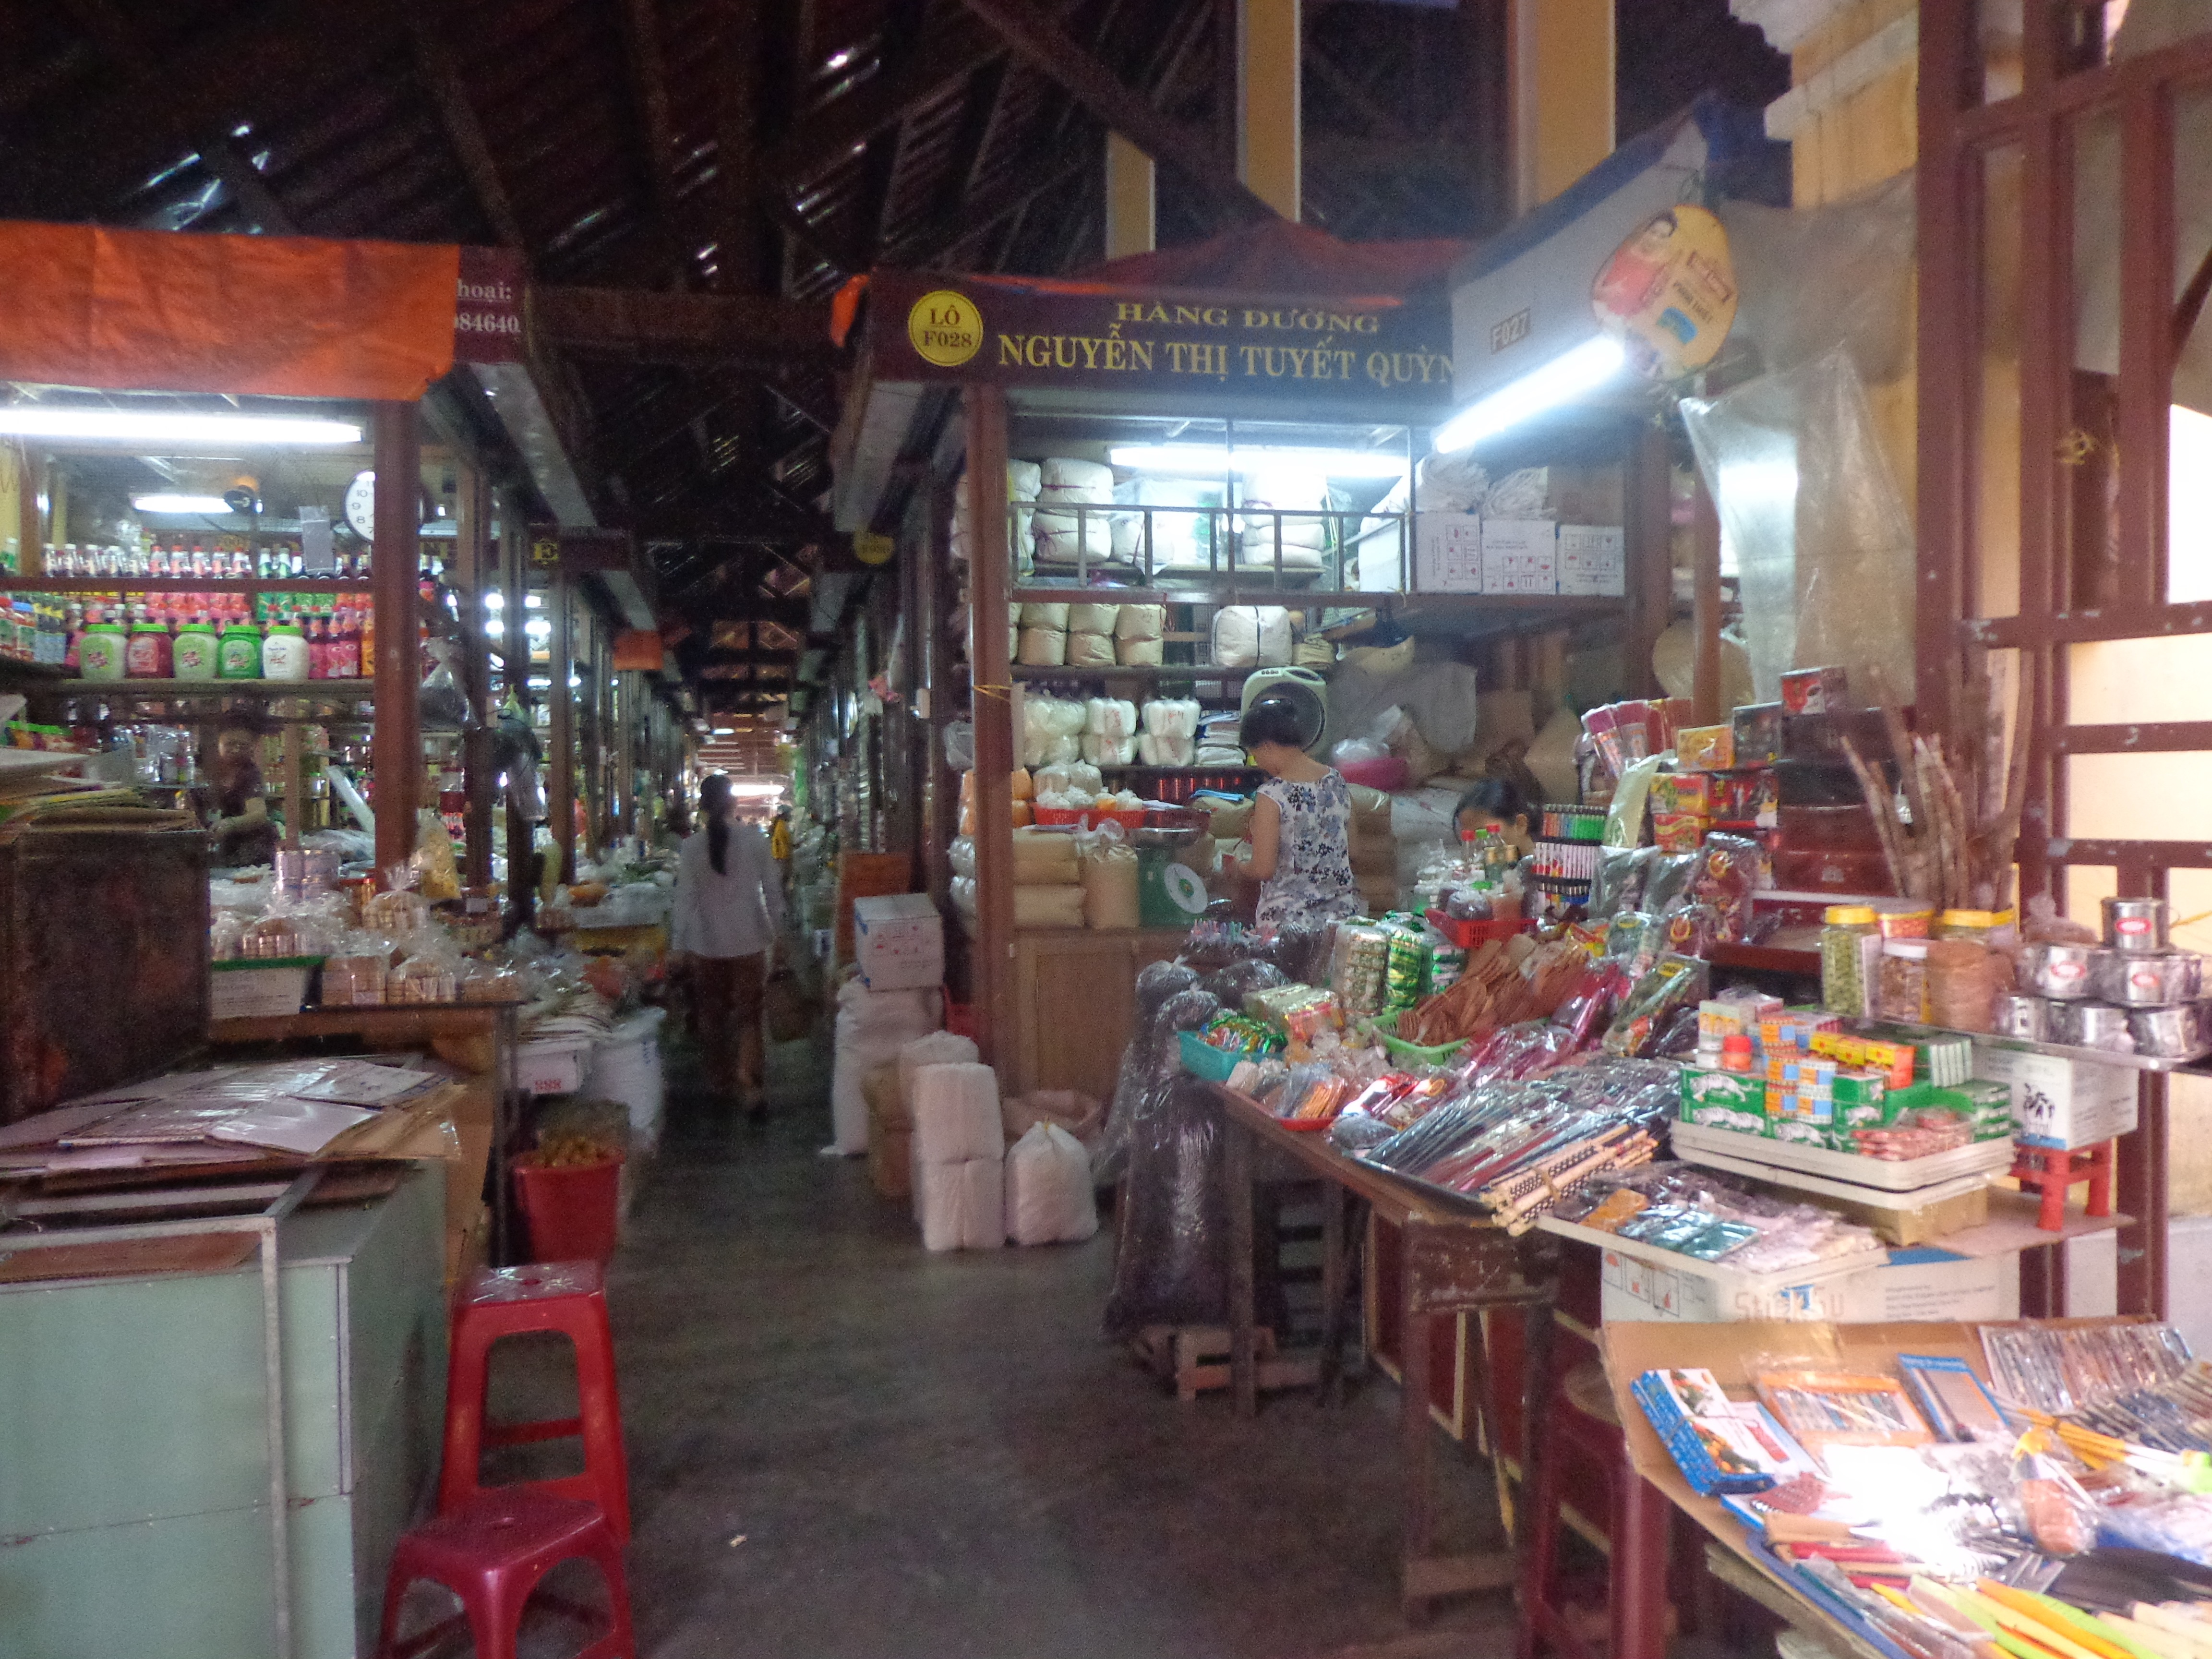 The front section of Hoi An central market sells grocery. It looks much like New Market in Kolkata.